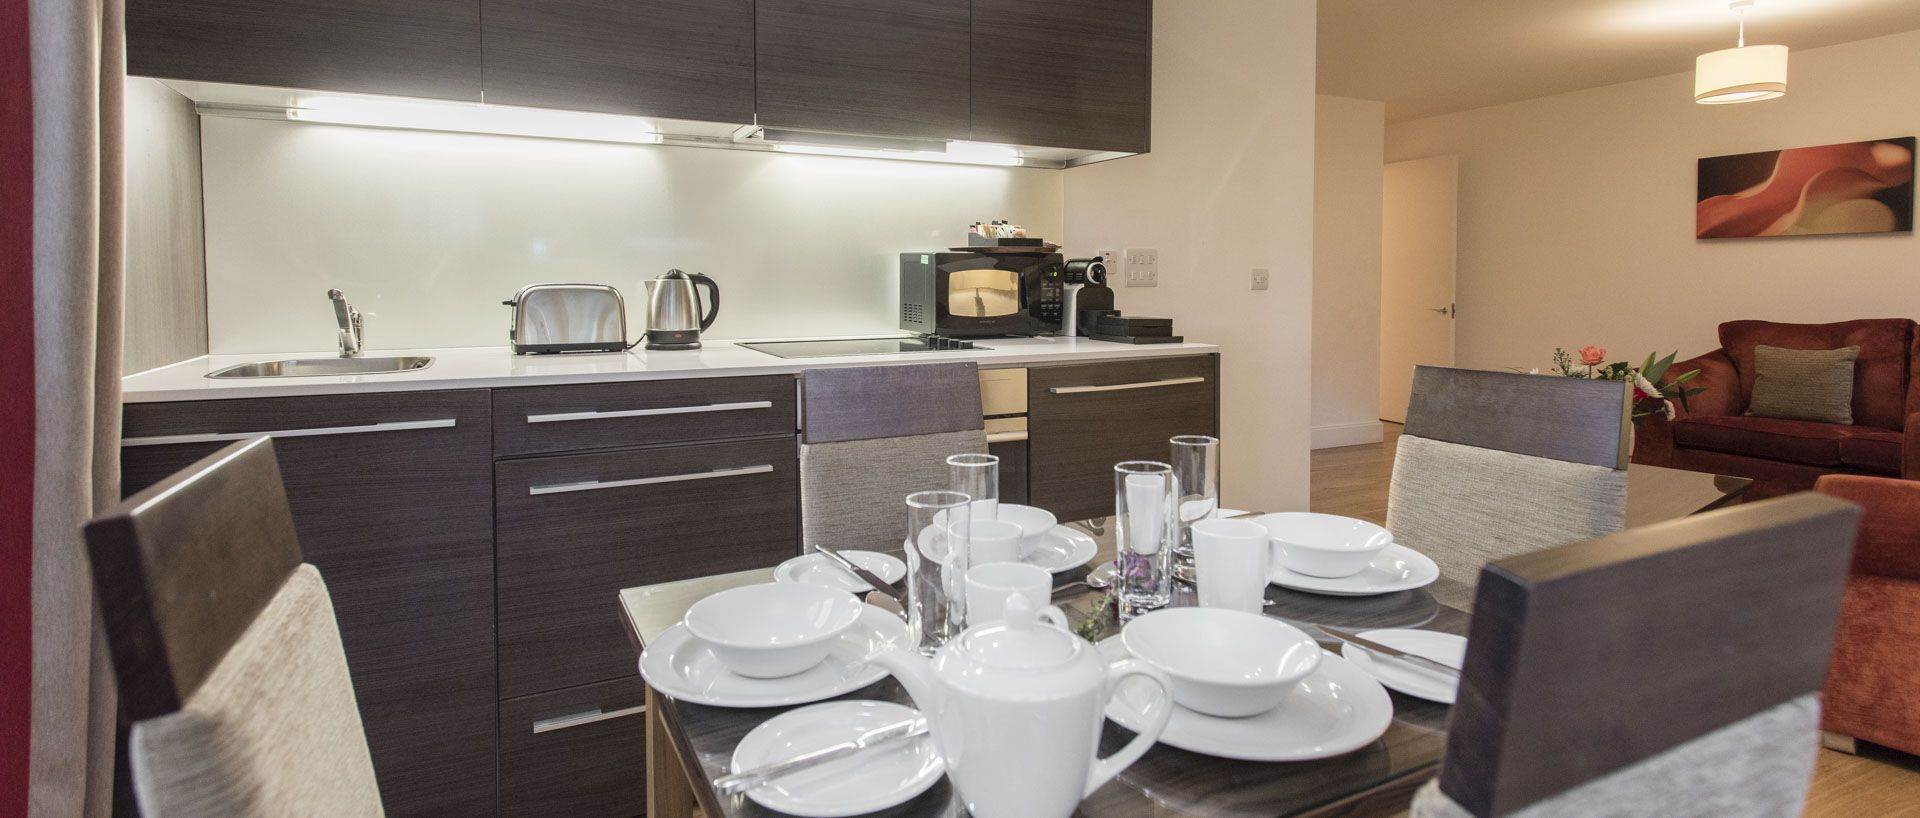 Dining area set up breakfast at PREMIER SUITES PLUS Bristol Cabot Circus